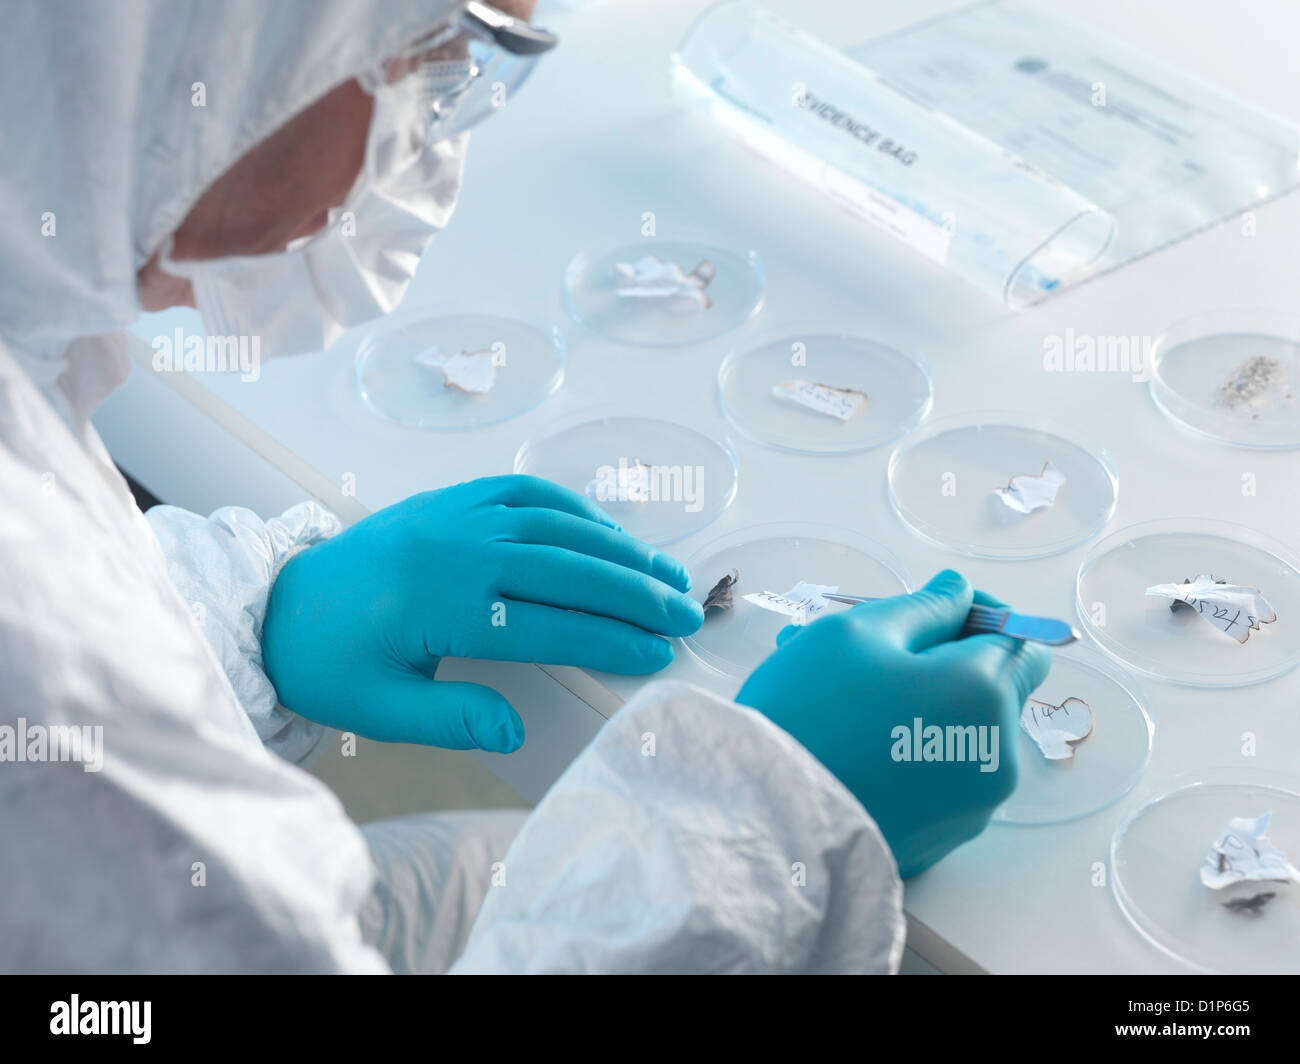 Forensic science - Stock Image